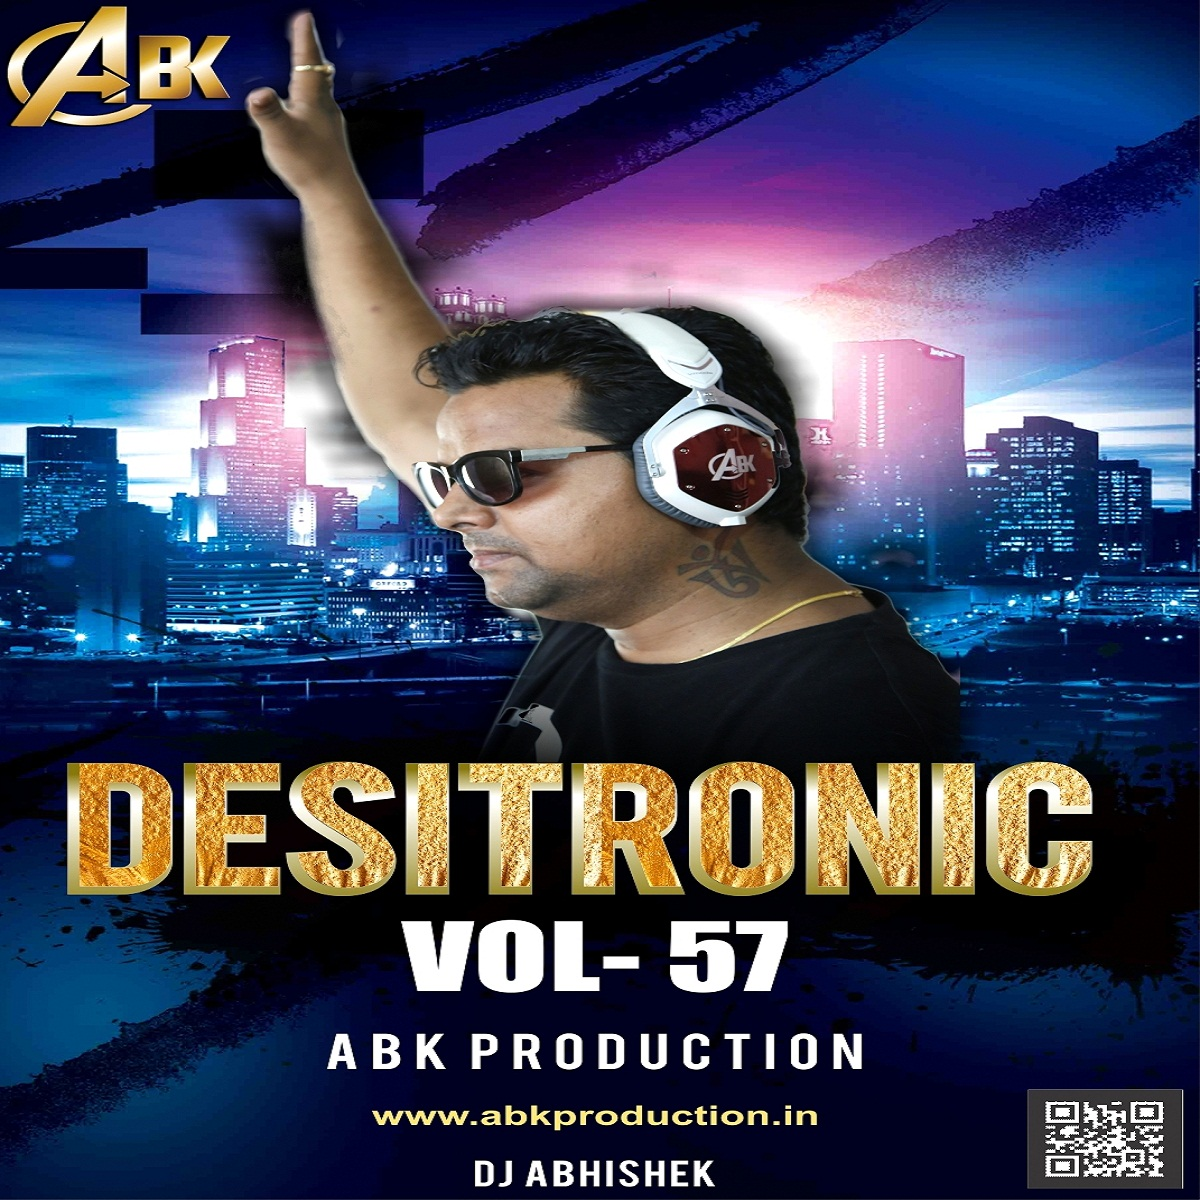 Desitronic Vol.57 ( ABK Production ) DJ Abhishek Kanpur